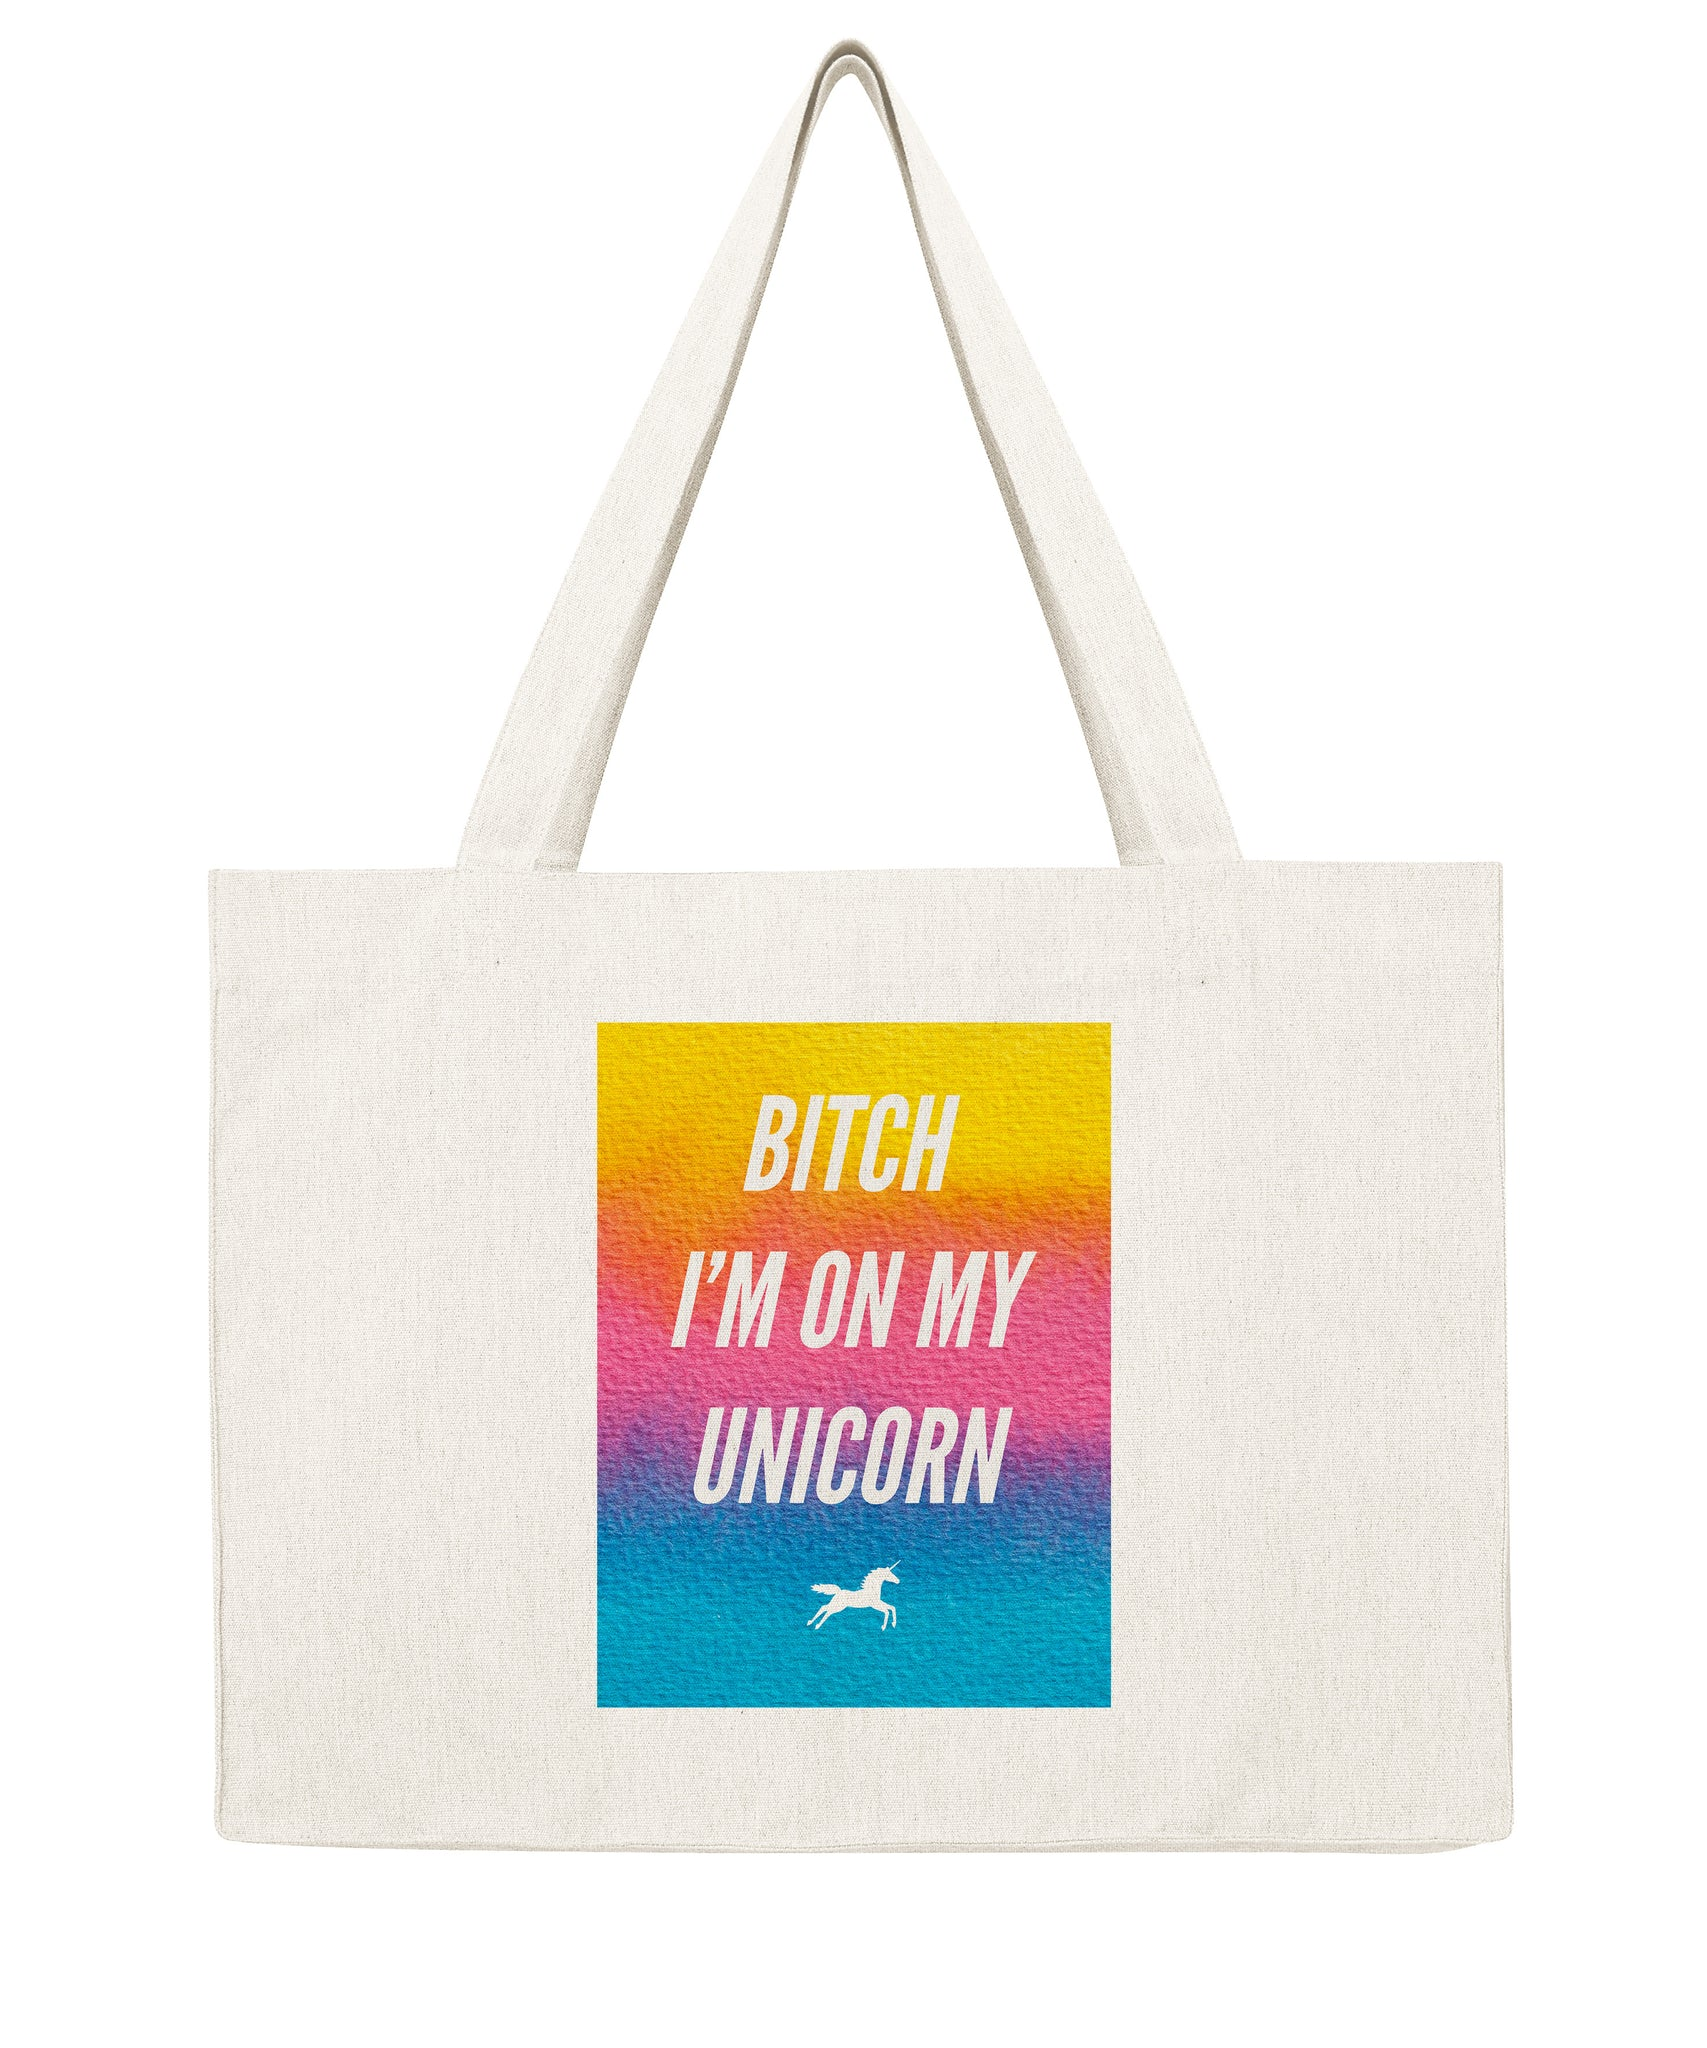 Bitch I'm on my unicorn - Shopping bag-Sacs-Atelier Amelot